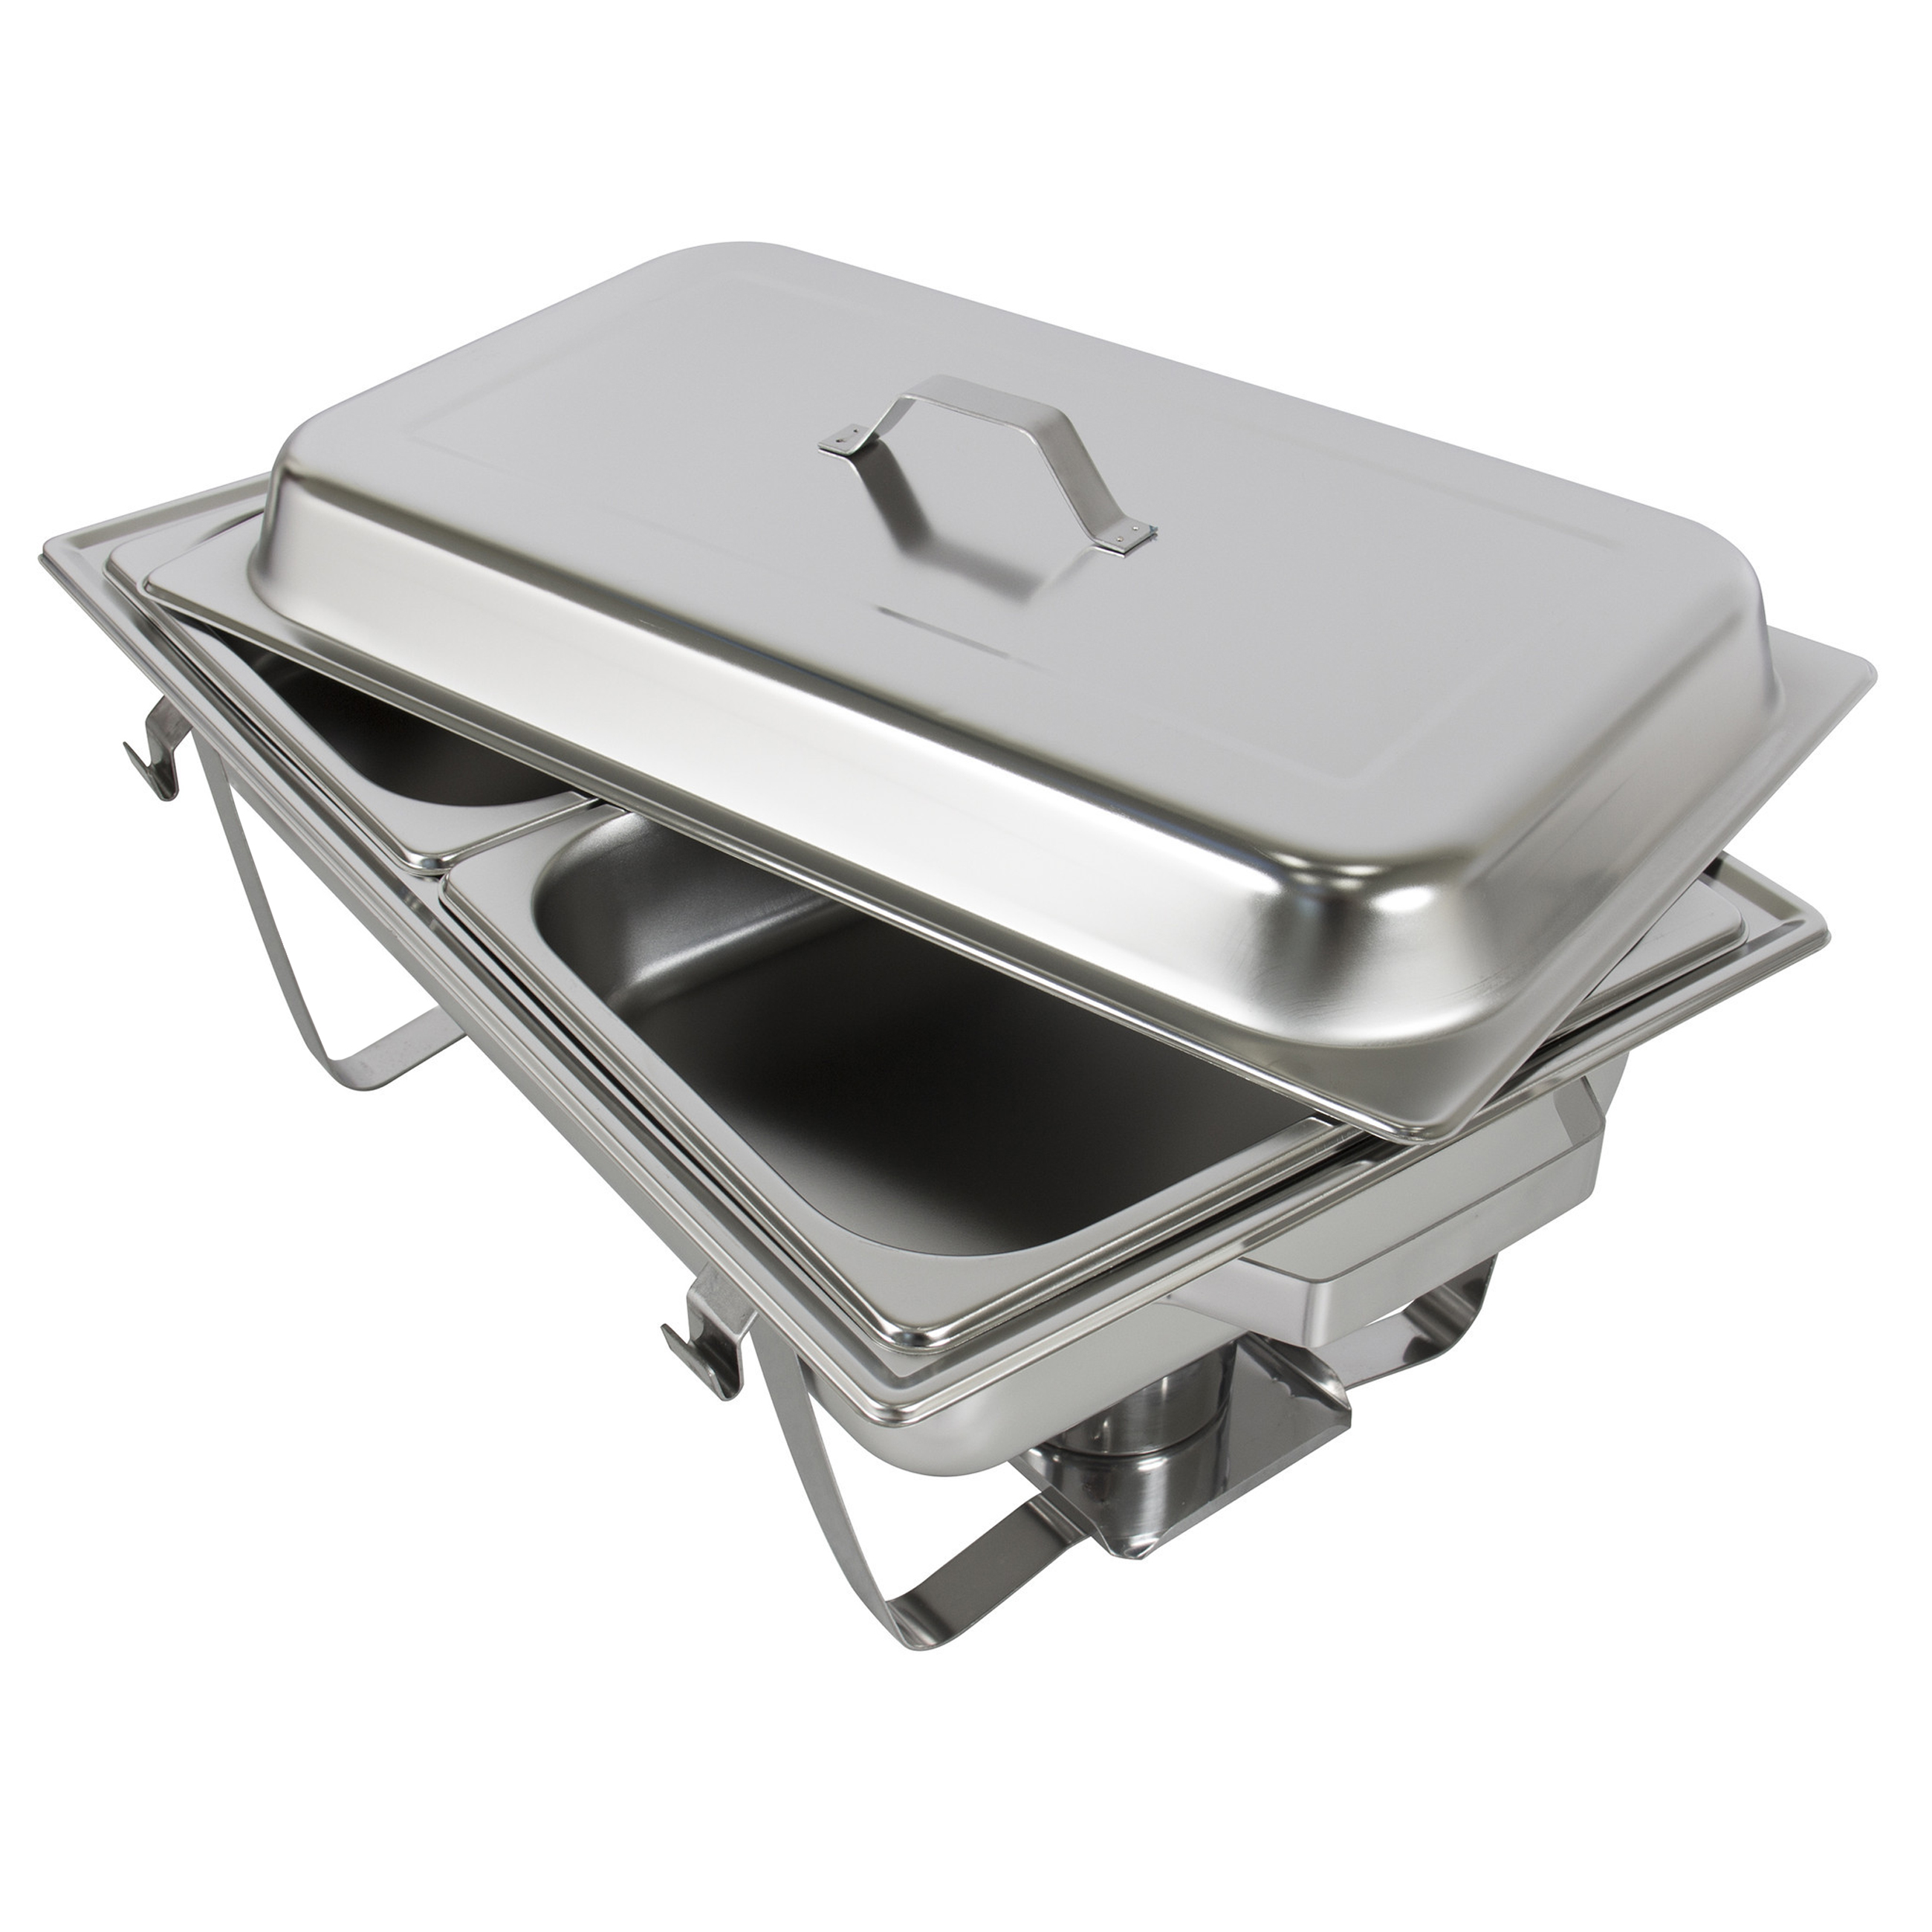 catering item rentals and leases kwipped rh kwipped com disposable buffet trays with lids catering buffet trays with lids